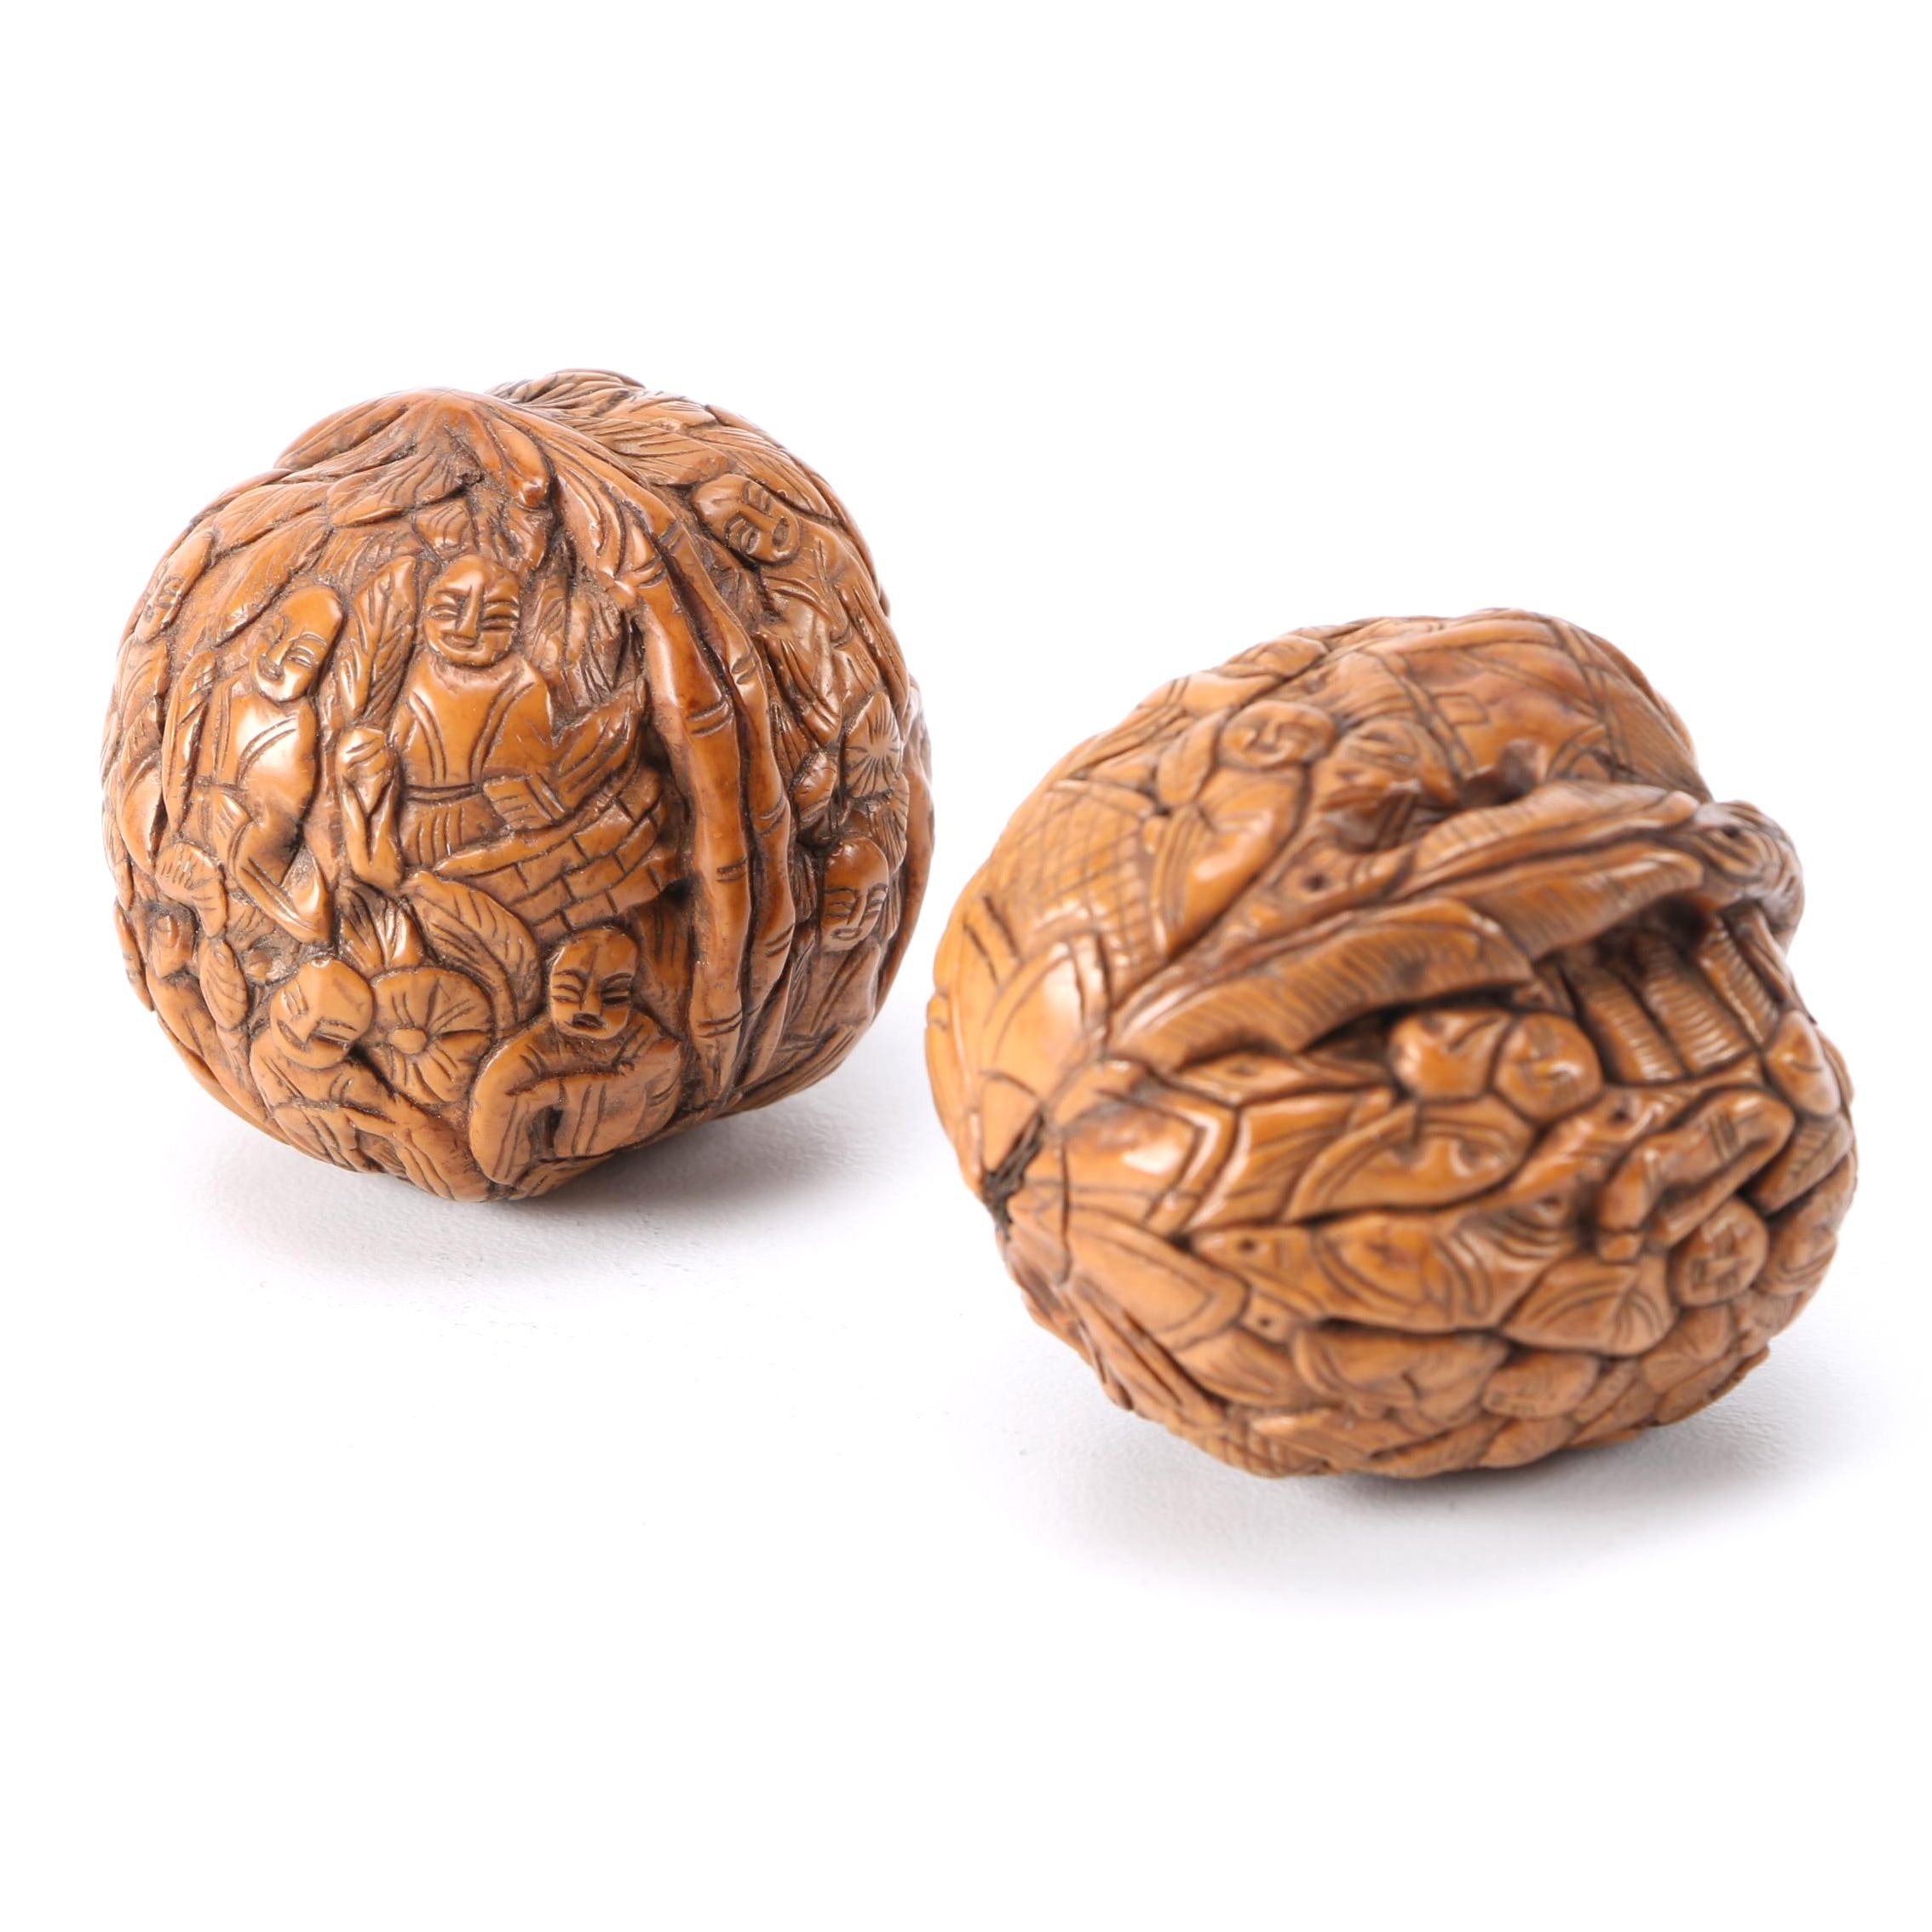 Asian Inspired Hand-Carved Walnut Shells